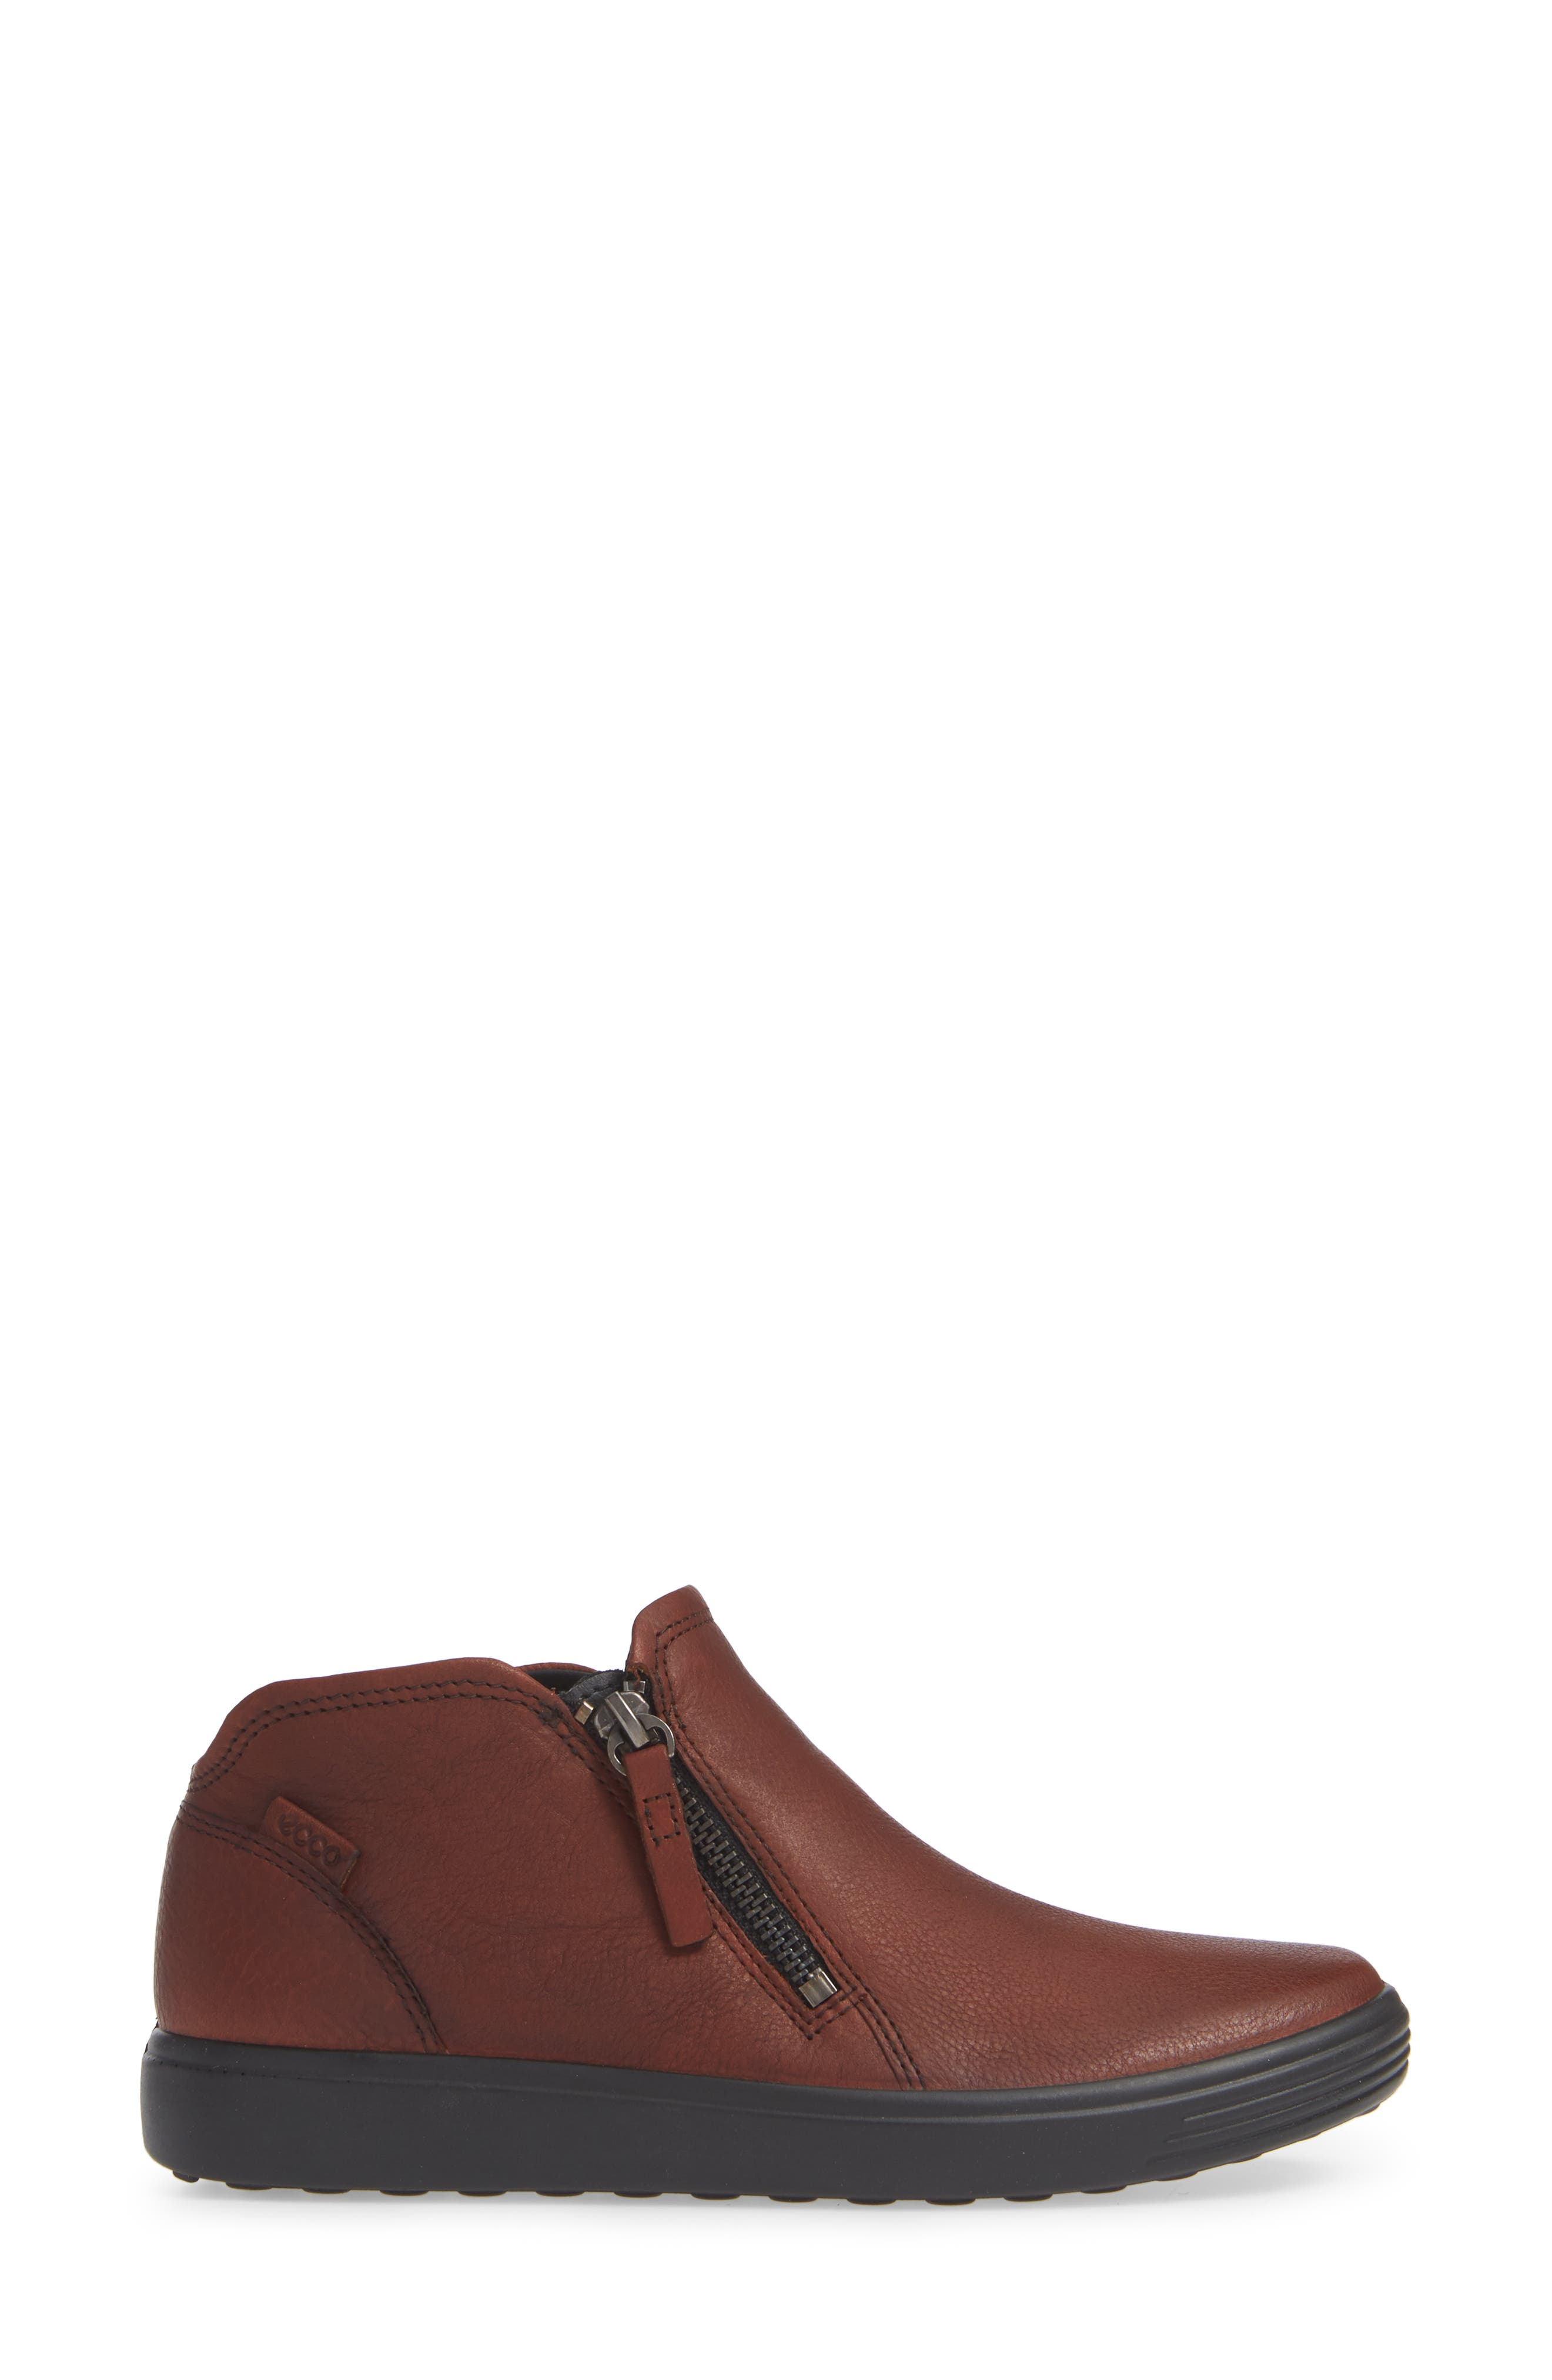 Soft 7 Mid Top Sneaker,                             Alternate thumbnail 3, color,                             COGNAC LEATHER